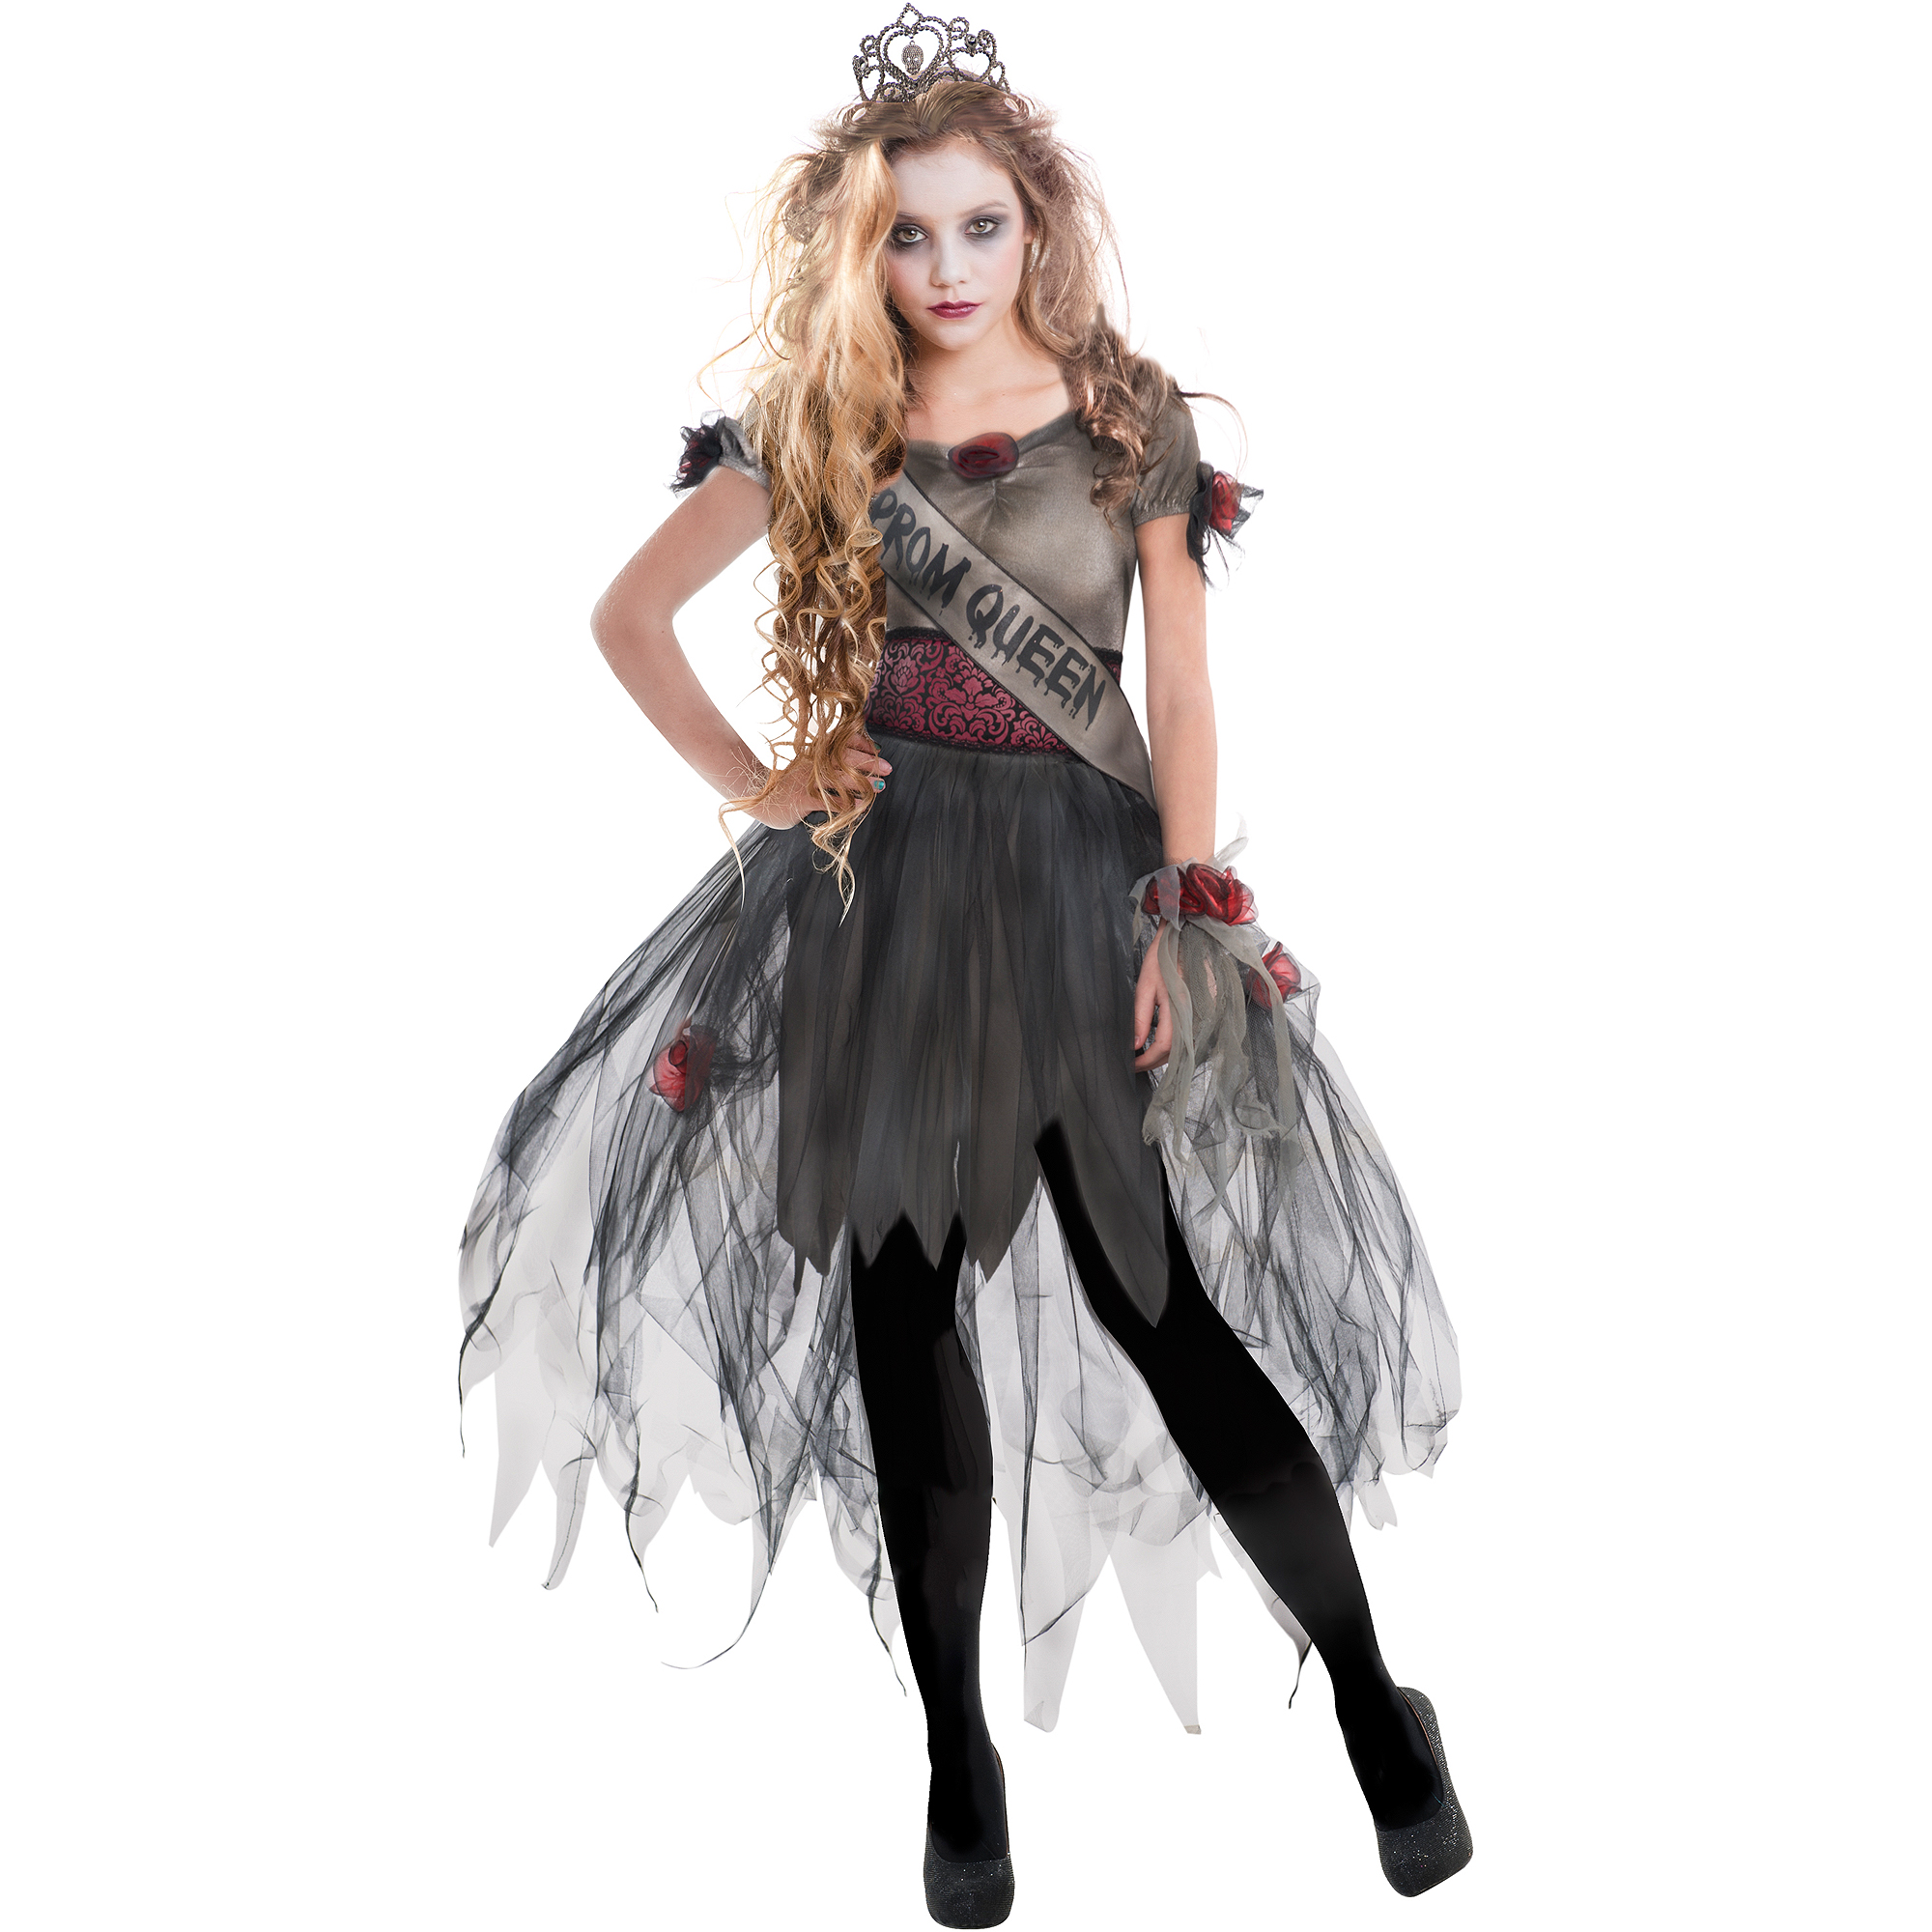 Prom Zombie Adult Dress Up / Role Play Costume - Walmart.com